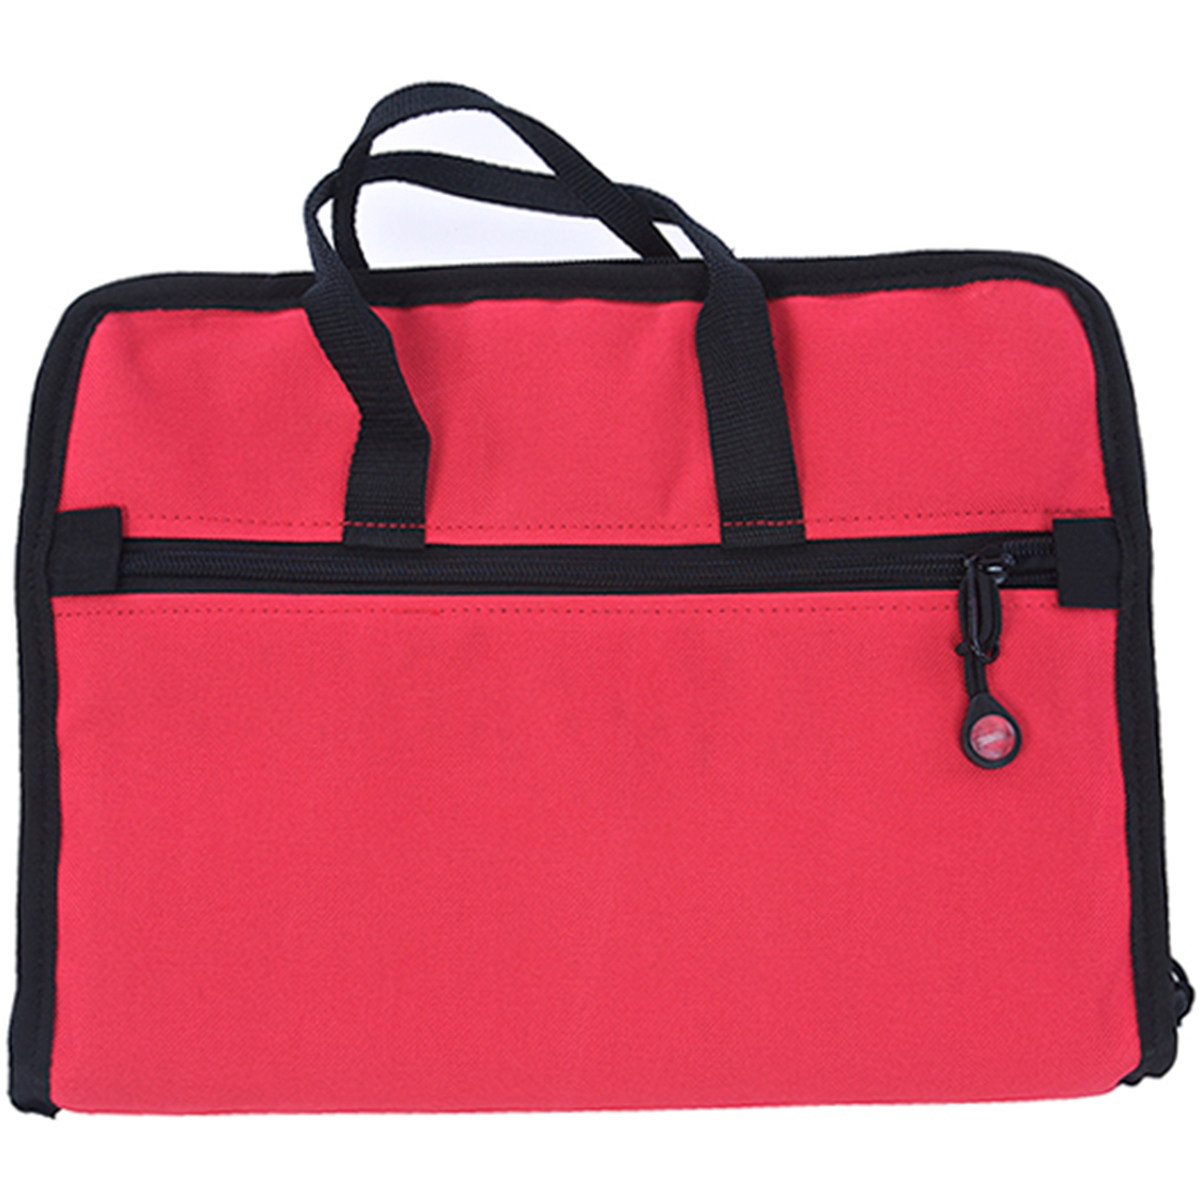 Notions Bag 20 Inch X 12 Inch-Red